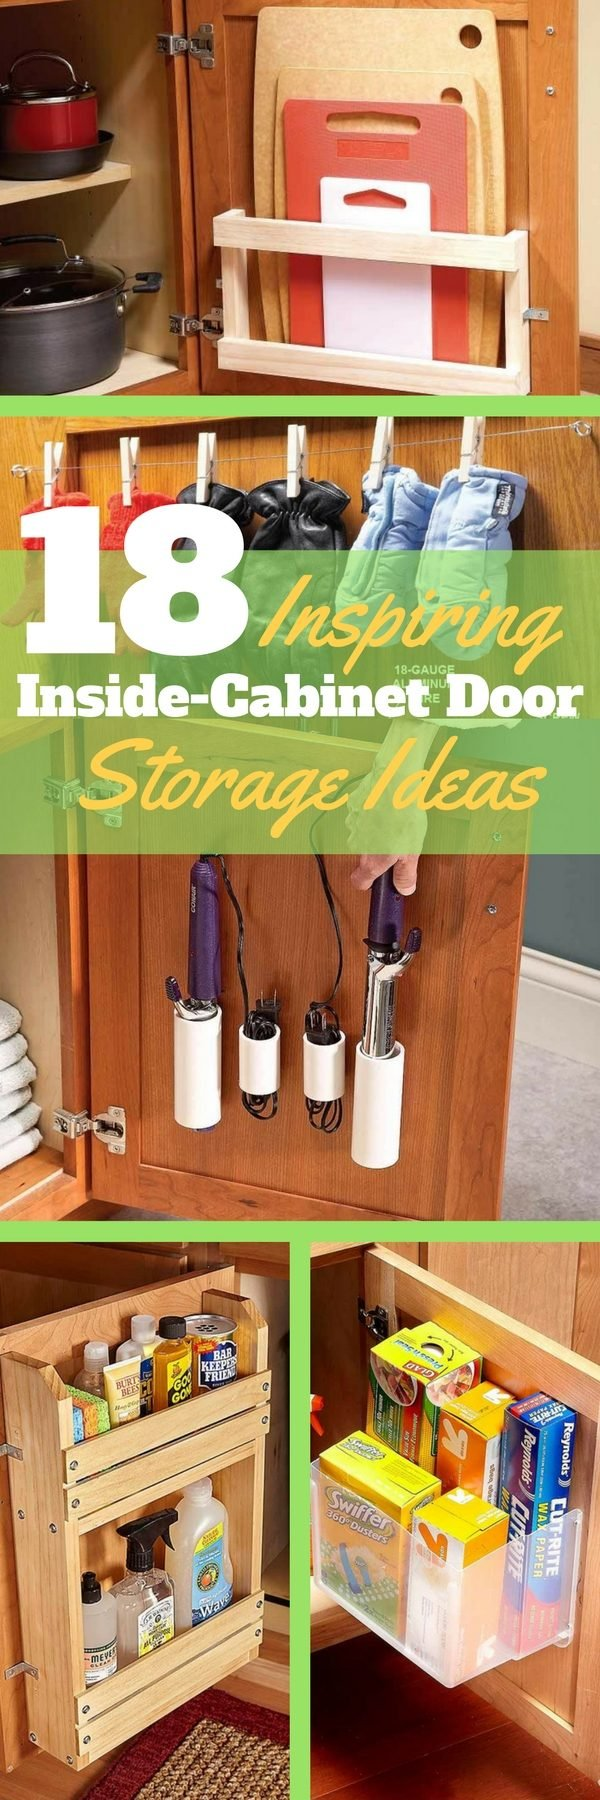 18 Inspiring Inside-Cabinet Door Storage Ideas | The ...